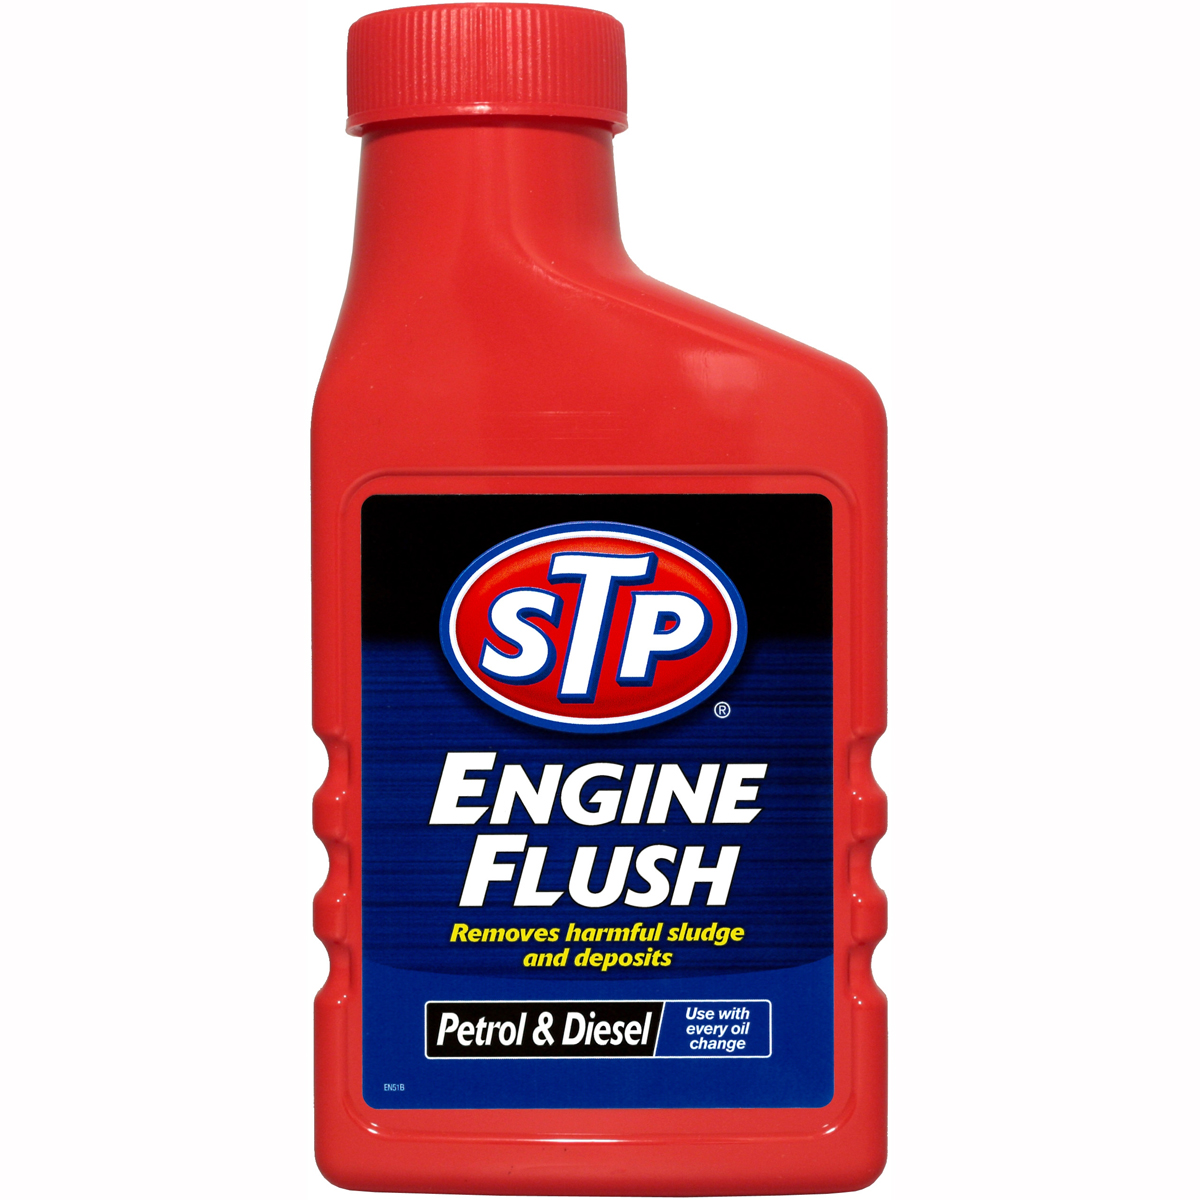 Summer Motorcyle Care: The STP Engine Flush